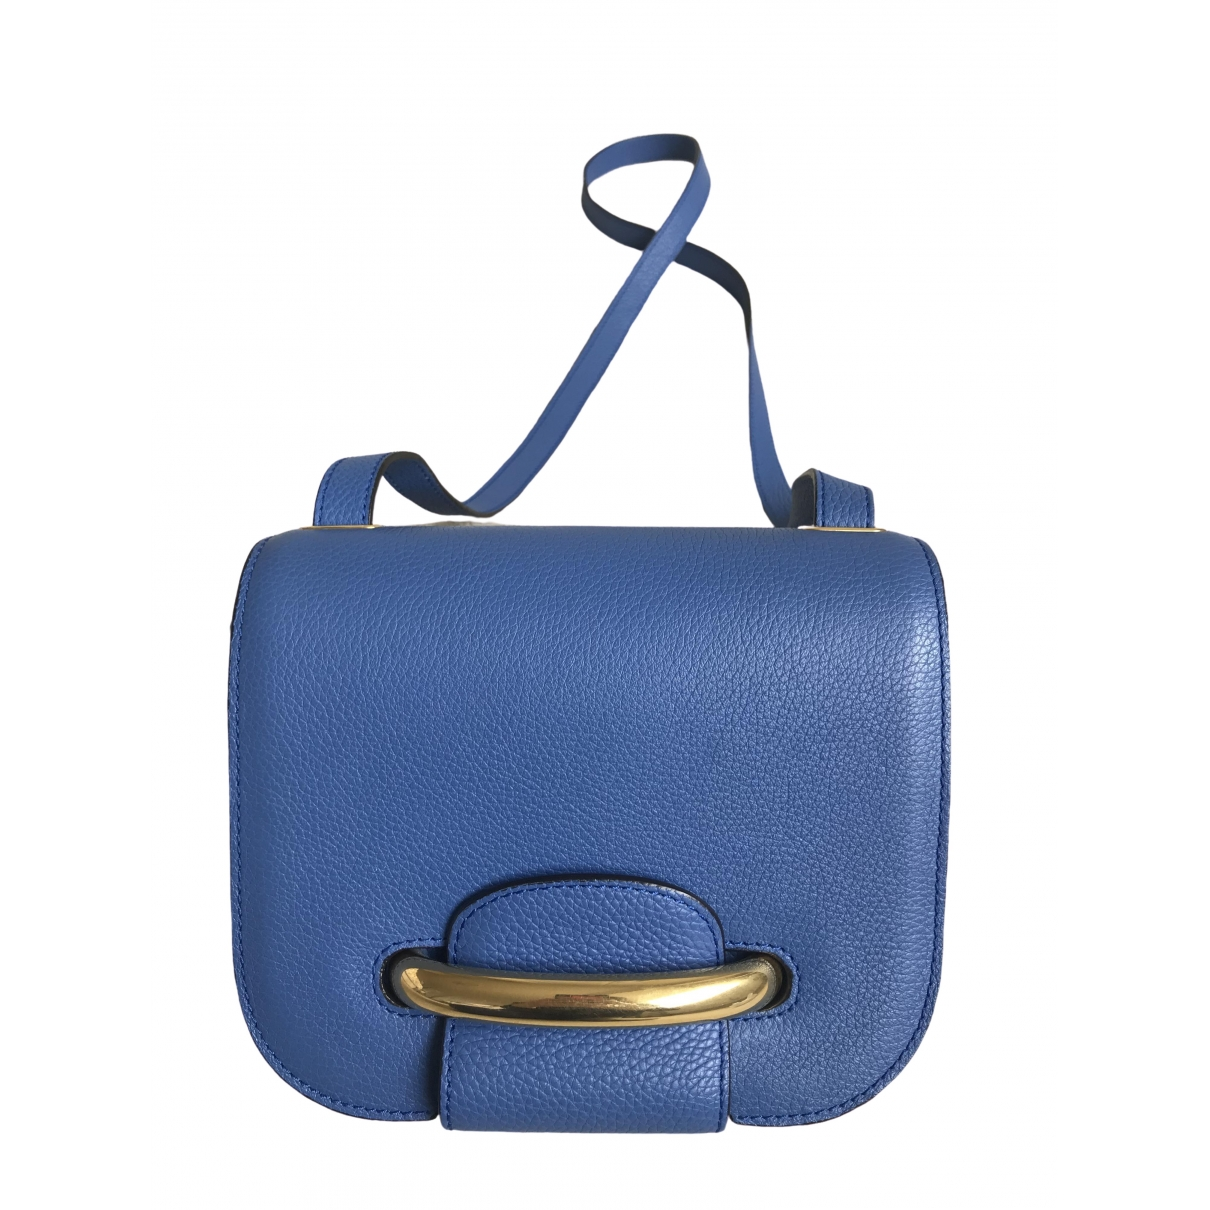 Mulberry \N Blue Leather handbag for Women \N